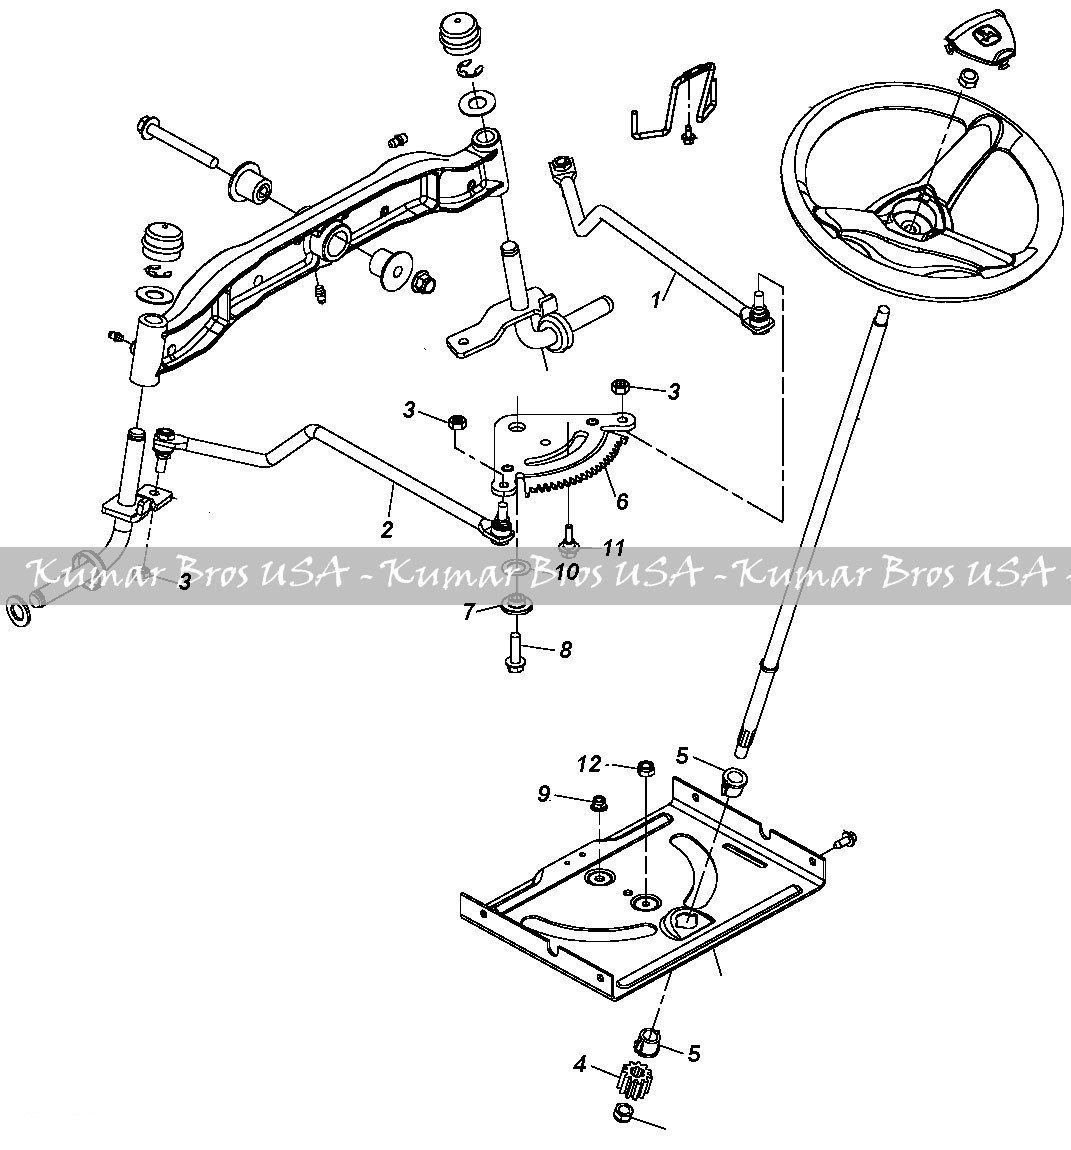 amazon john deere tractor steering kit la100 la105 la110 la120 John Deere L110 Deck Diagram amazon john deere tractor steering kit la100 la105 la110 la120 la125 la130 la135 garden outdoor